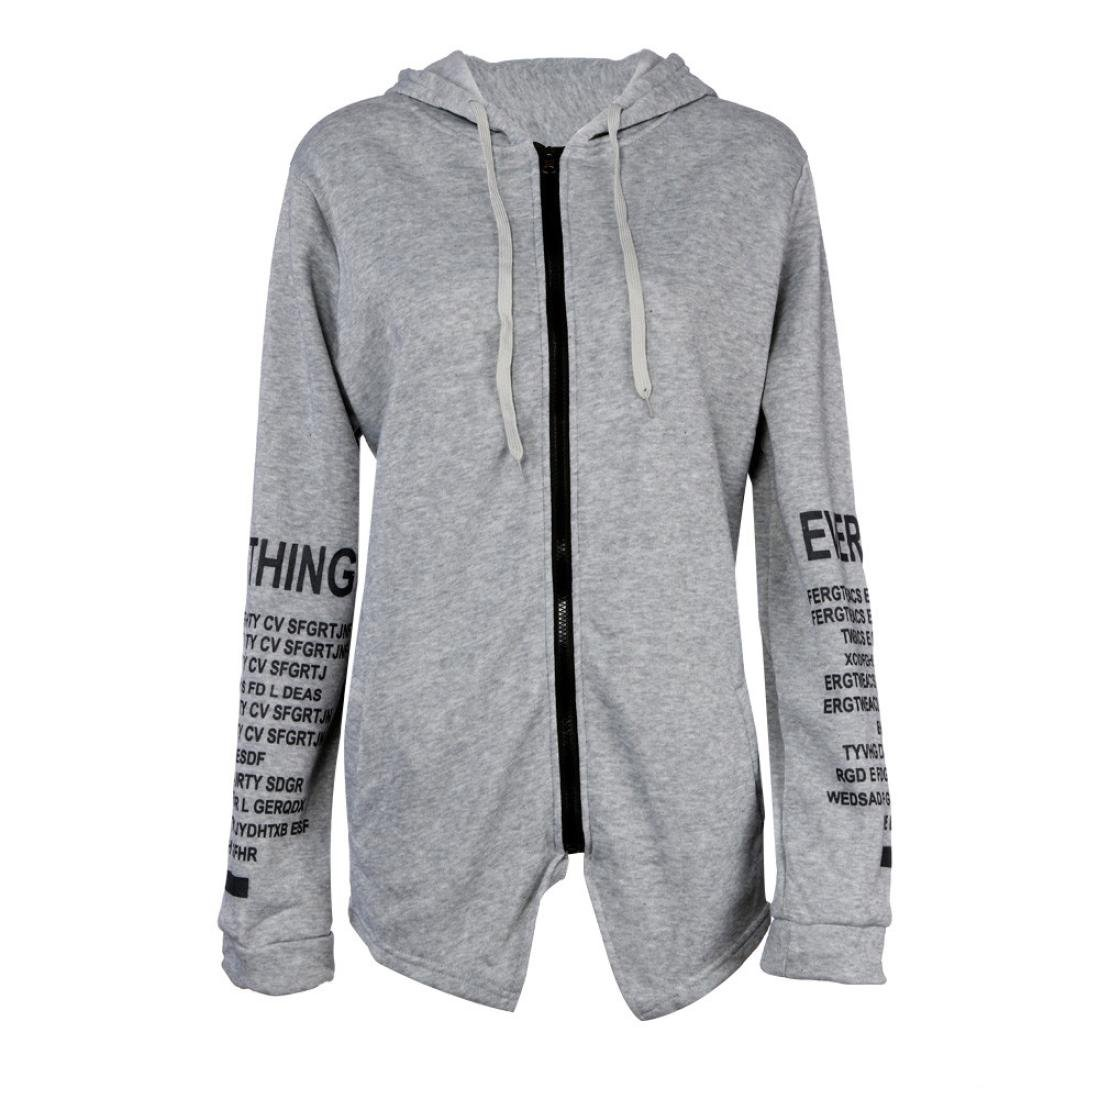 Hot ! Women Coat, Ninasill Exclusive Long Sleeve Graffiti Letter Printing Sweater Zipper Hoodie Coat (S, Gray) z951003c